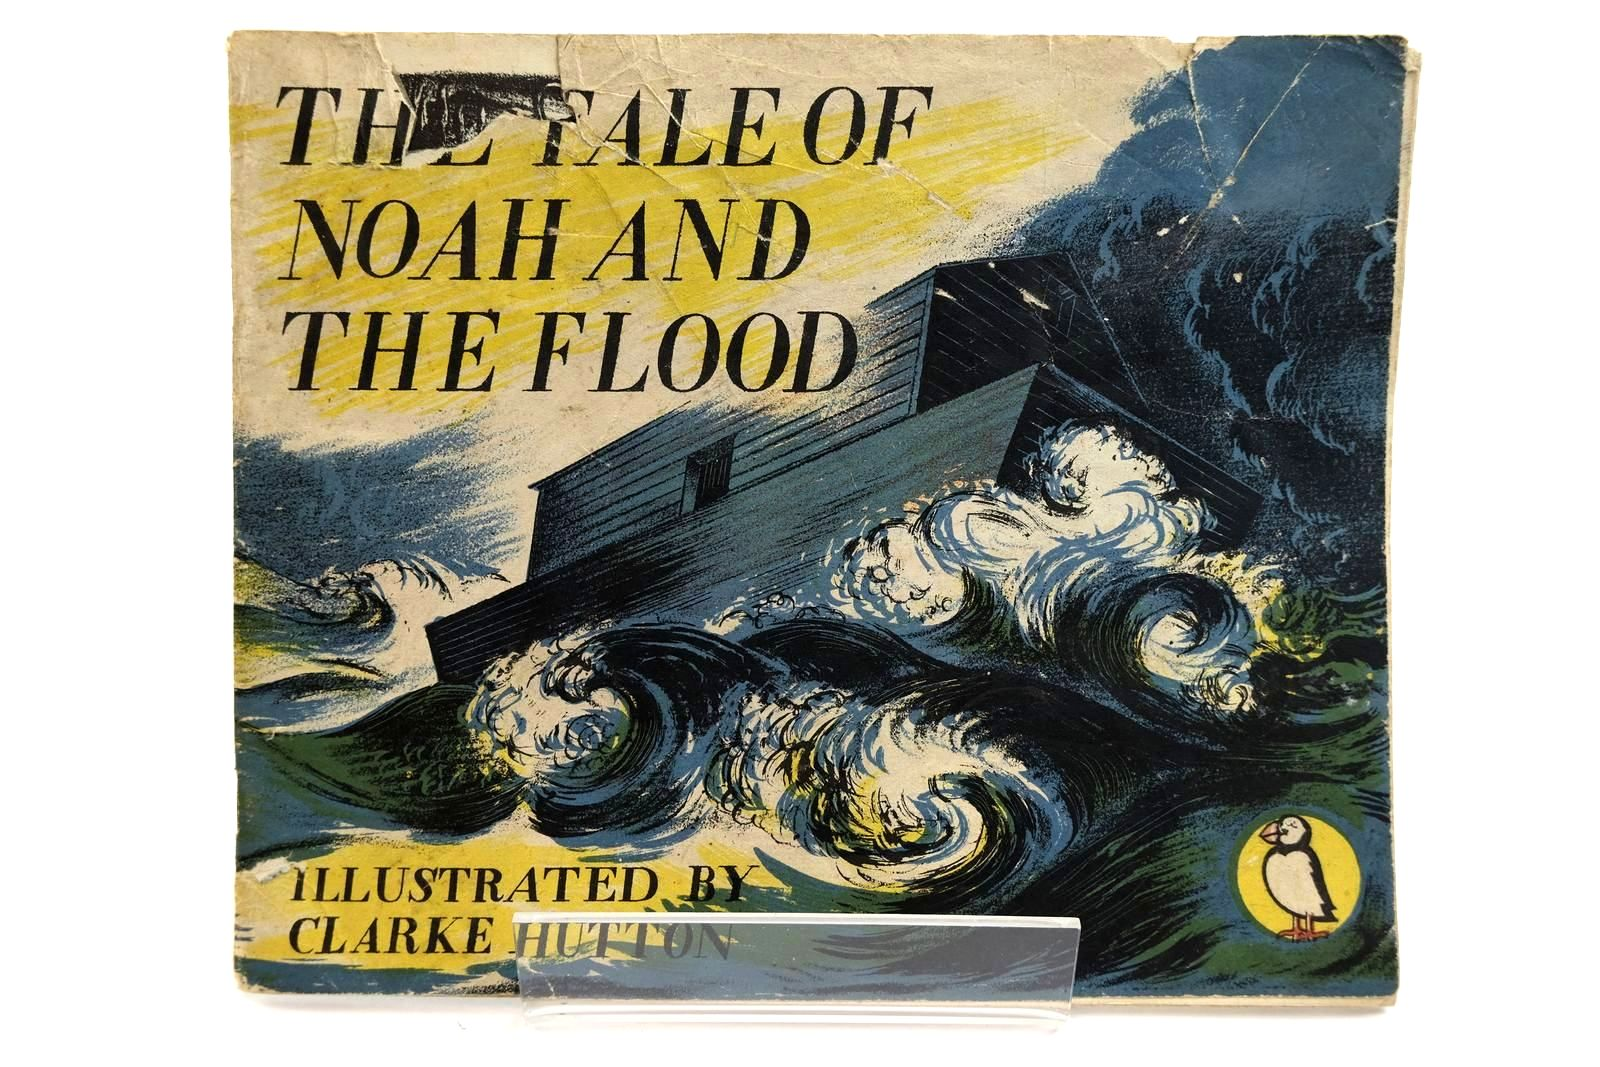 Photo of THE TALE OF NOAH AND THE FLOOD written by Williams, W.E. illustrated by Hutton, Clarke published by Penguin Books (STOCK CODE: 2131948)  for sale by Stella & Rose's Books